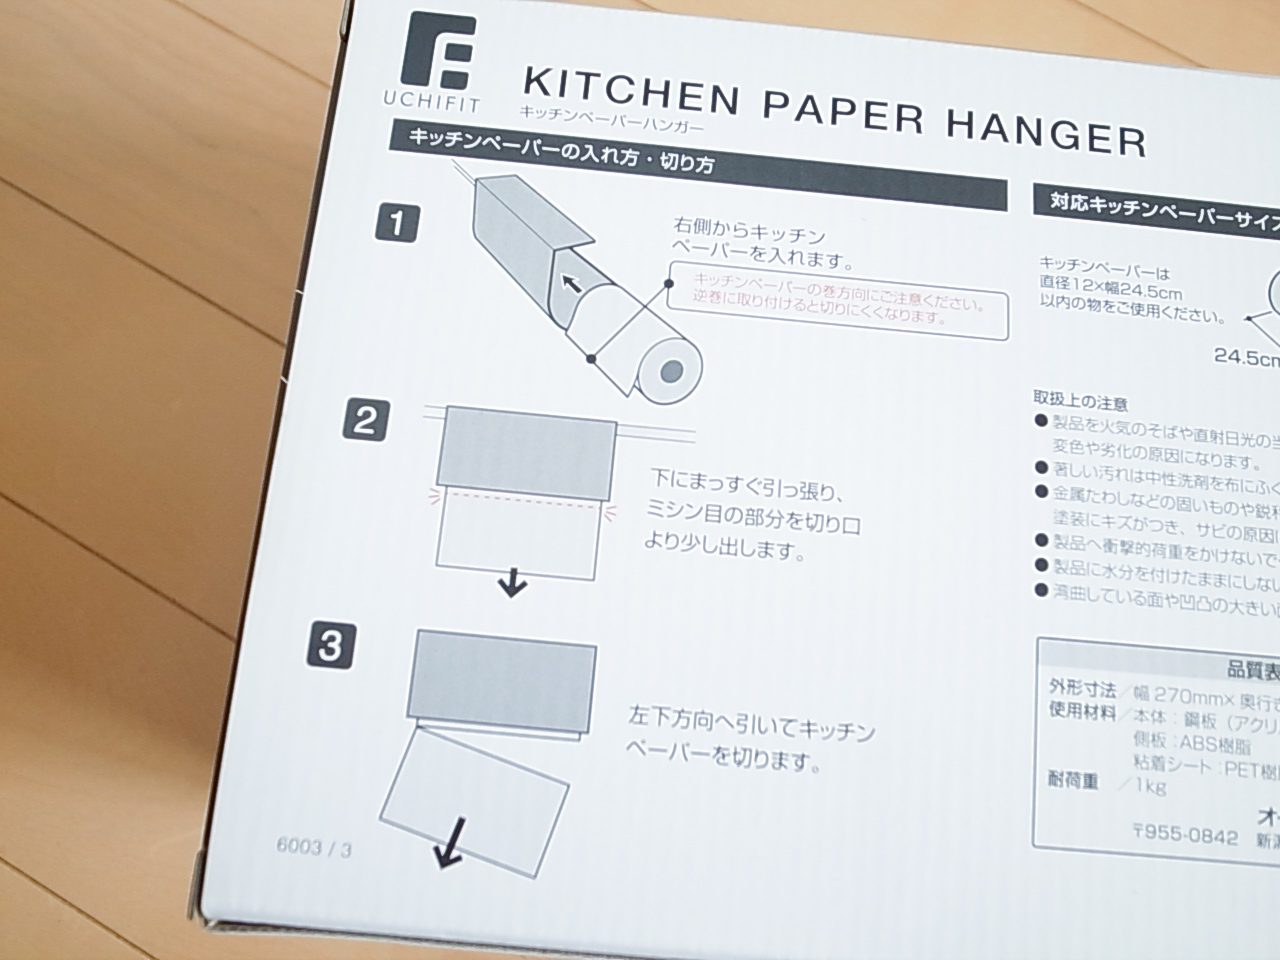 Kitchen paper hanger 2